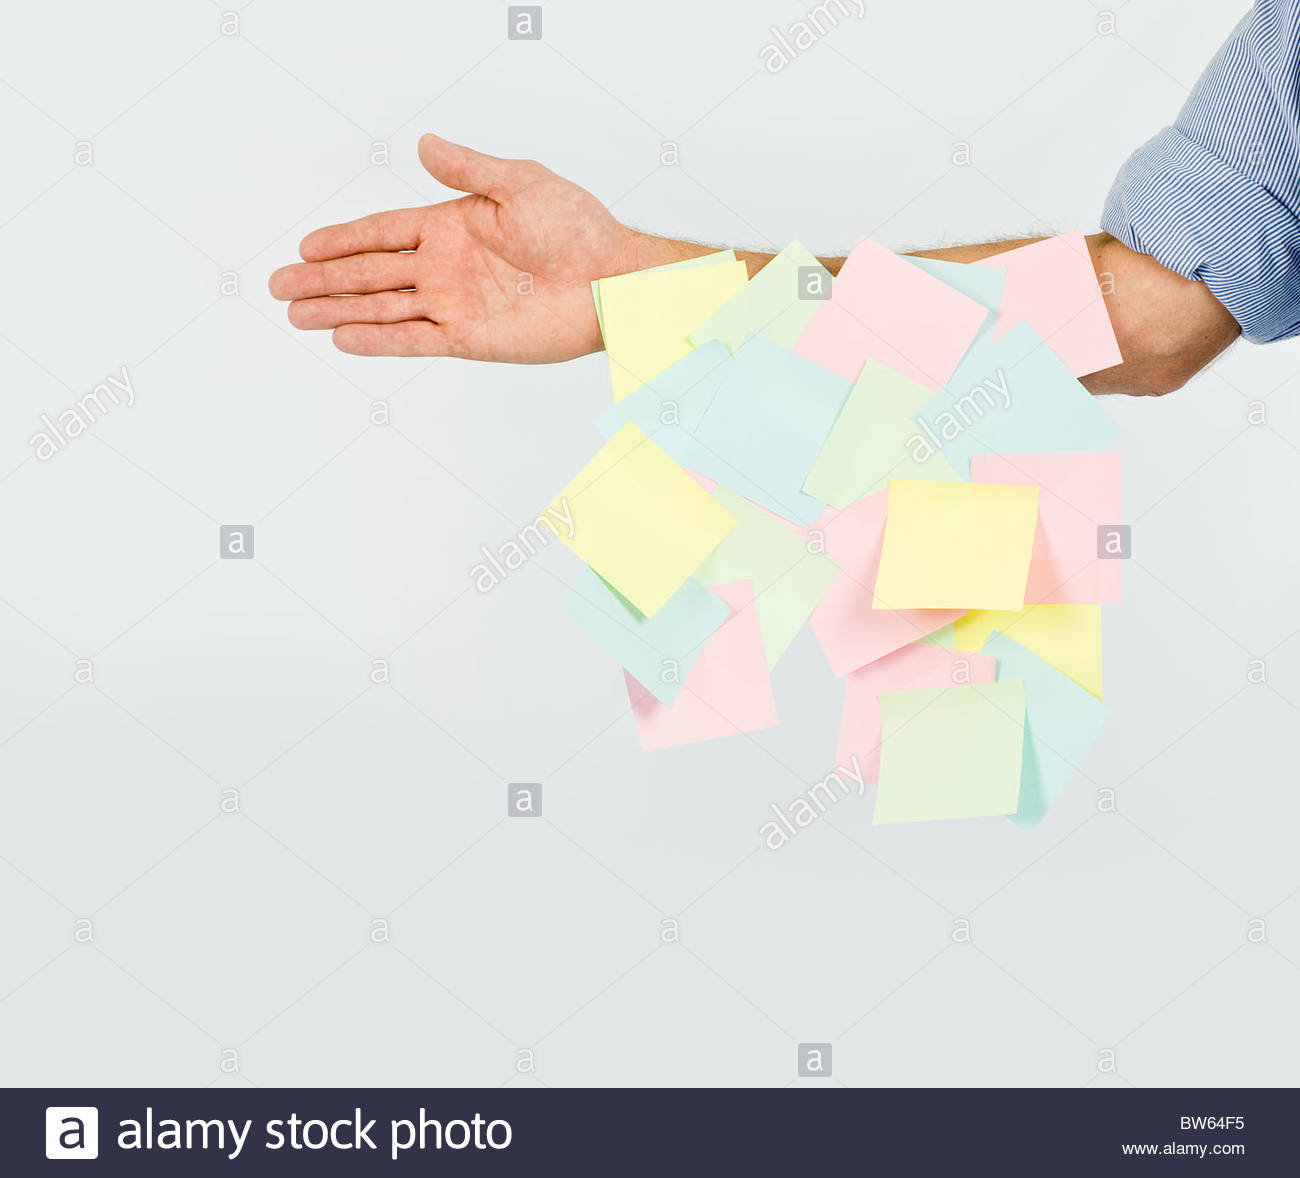 Blank memo post it notes on arm - Stock Image